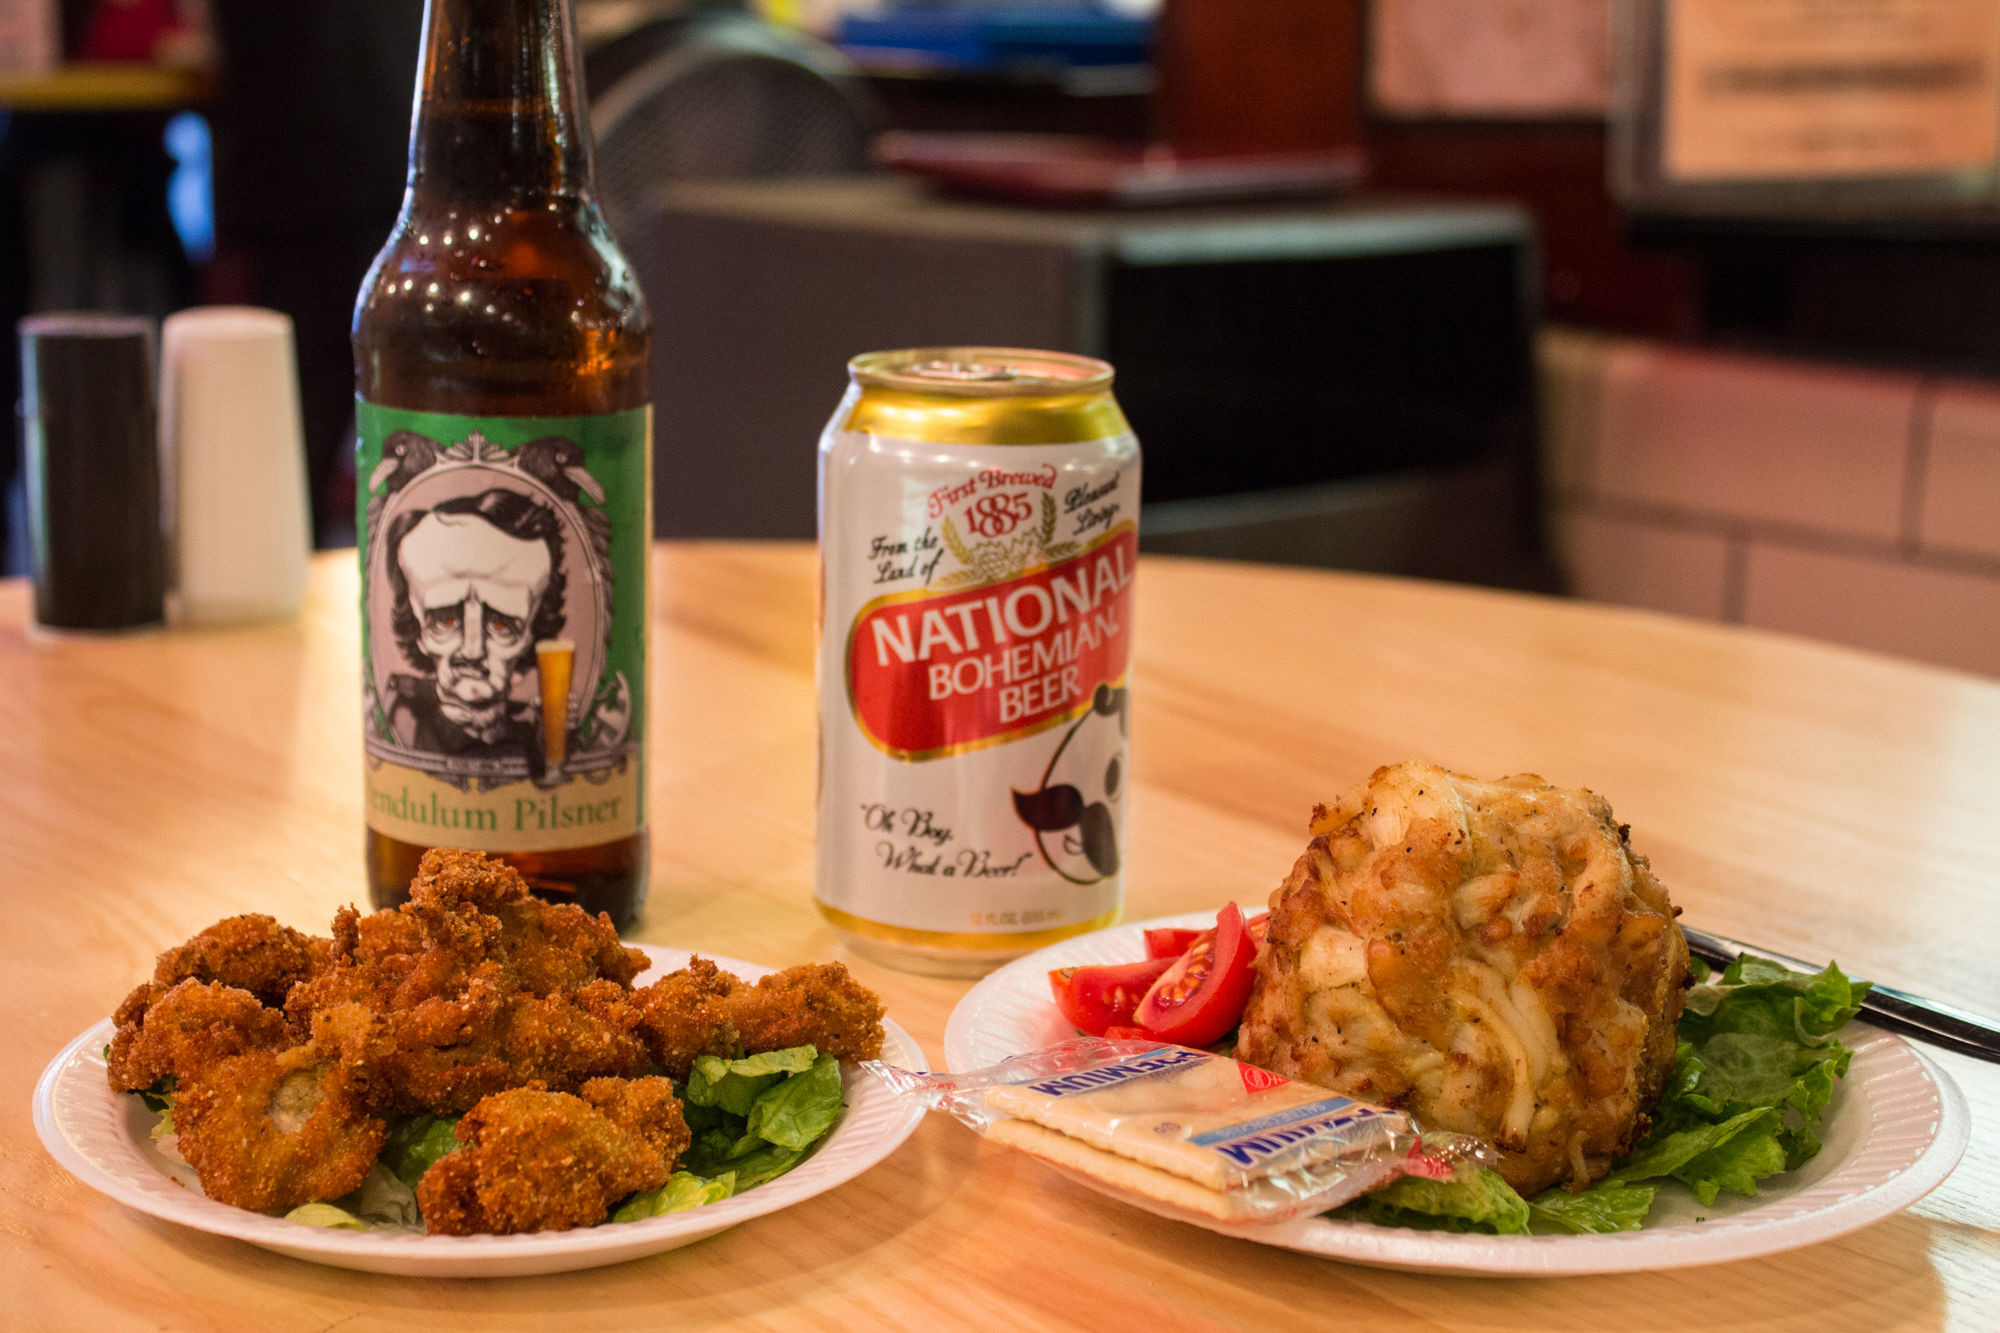 Among the produce and food vendors at Baltimore's rambunctious Lexington Market, Faidley sells crab cakes so packed with subtly spiced crabmeat that you won't mind having to stand at counters to eat them. We can't decide between the lump and...